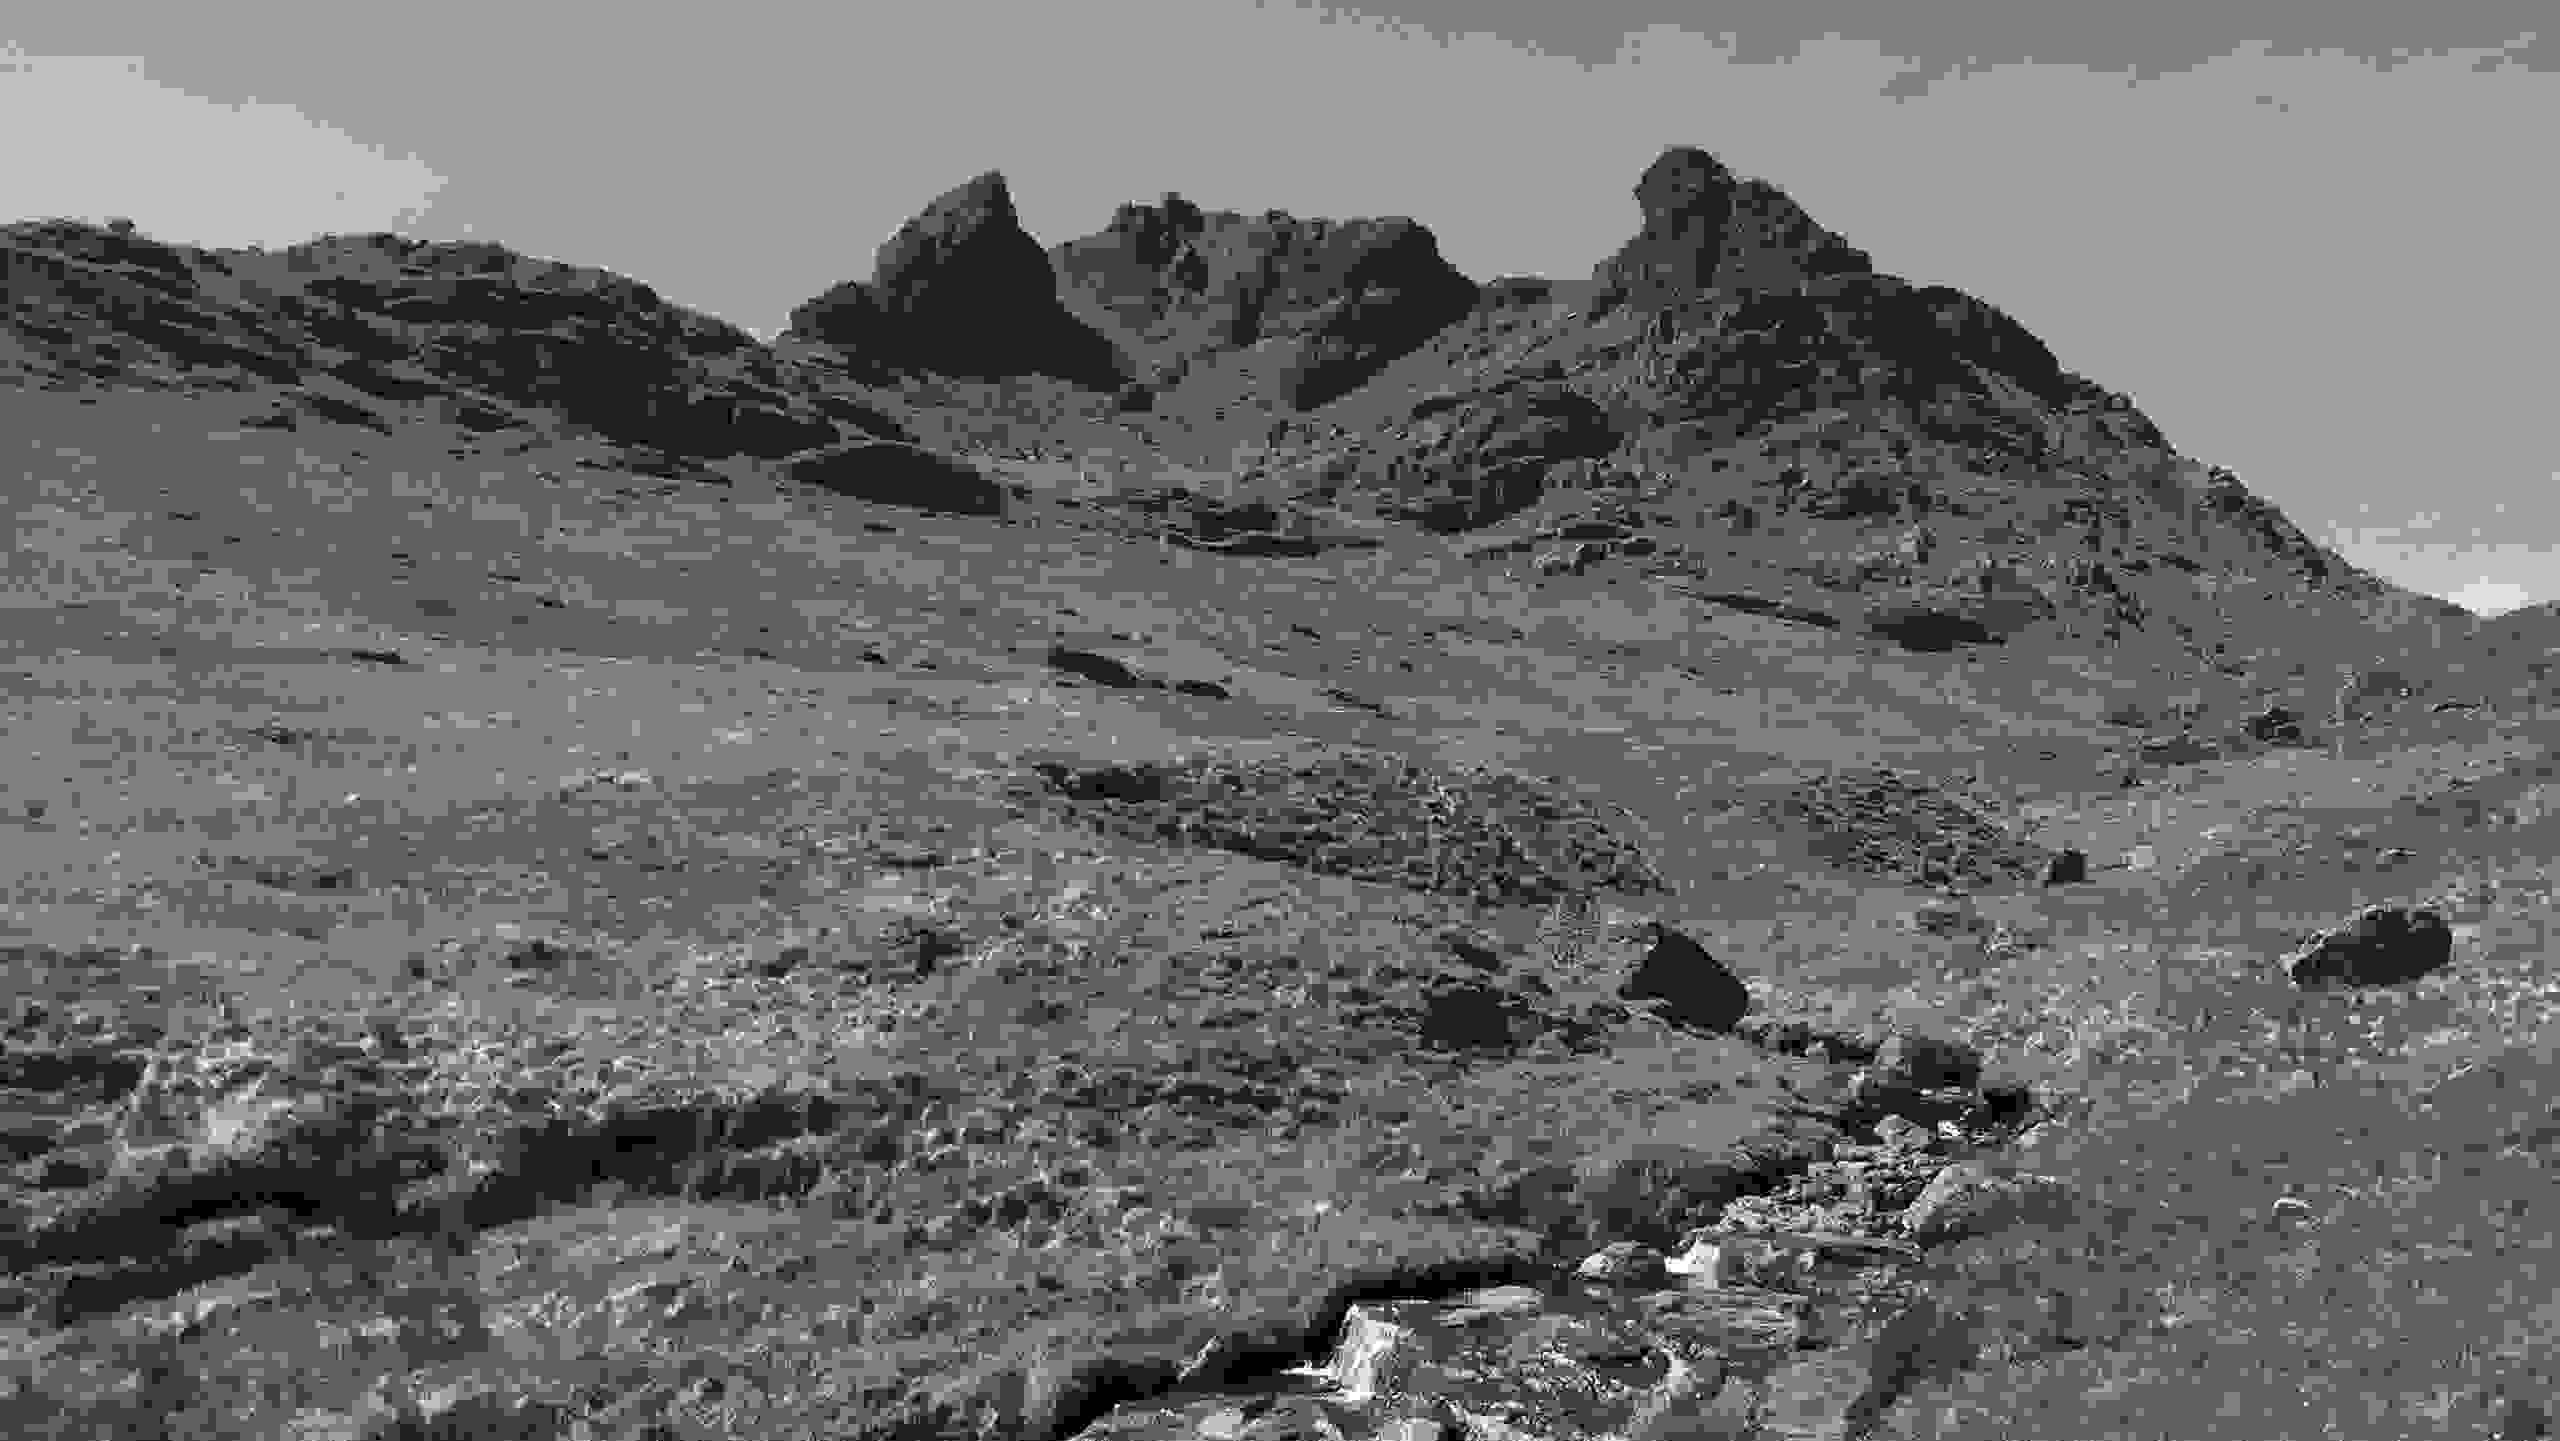 View of Ben Arthur (The Cobbler) from the path.